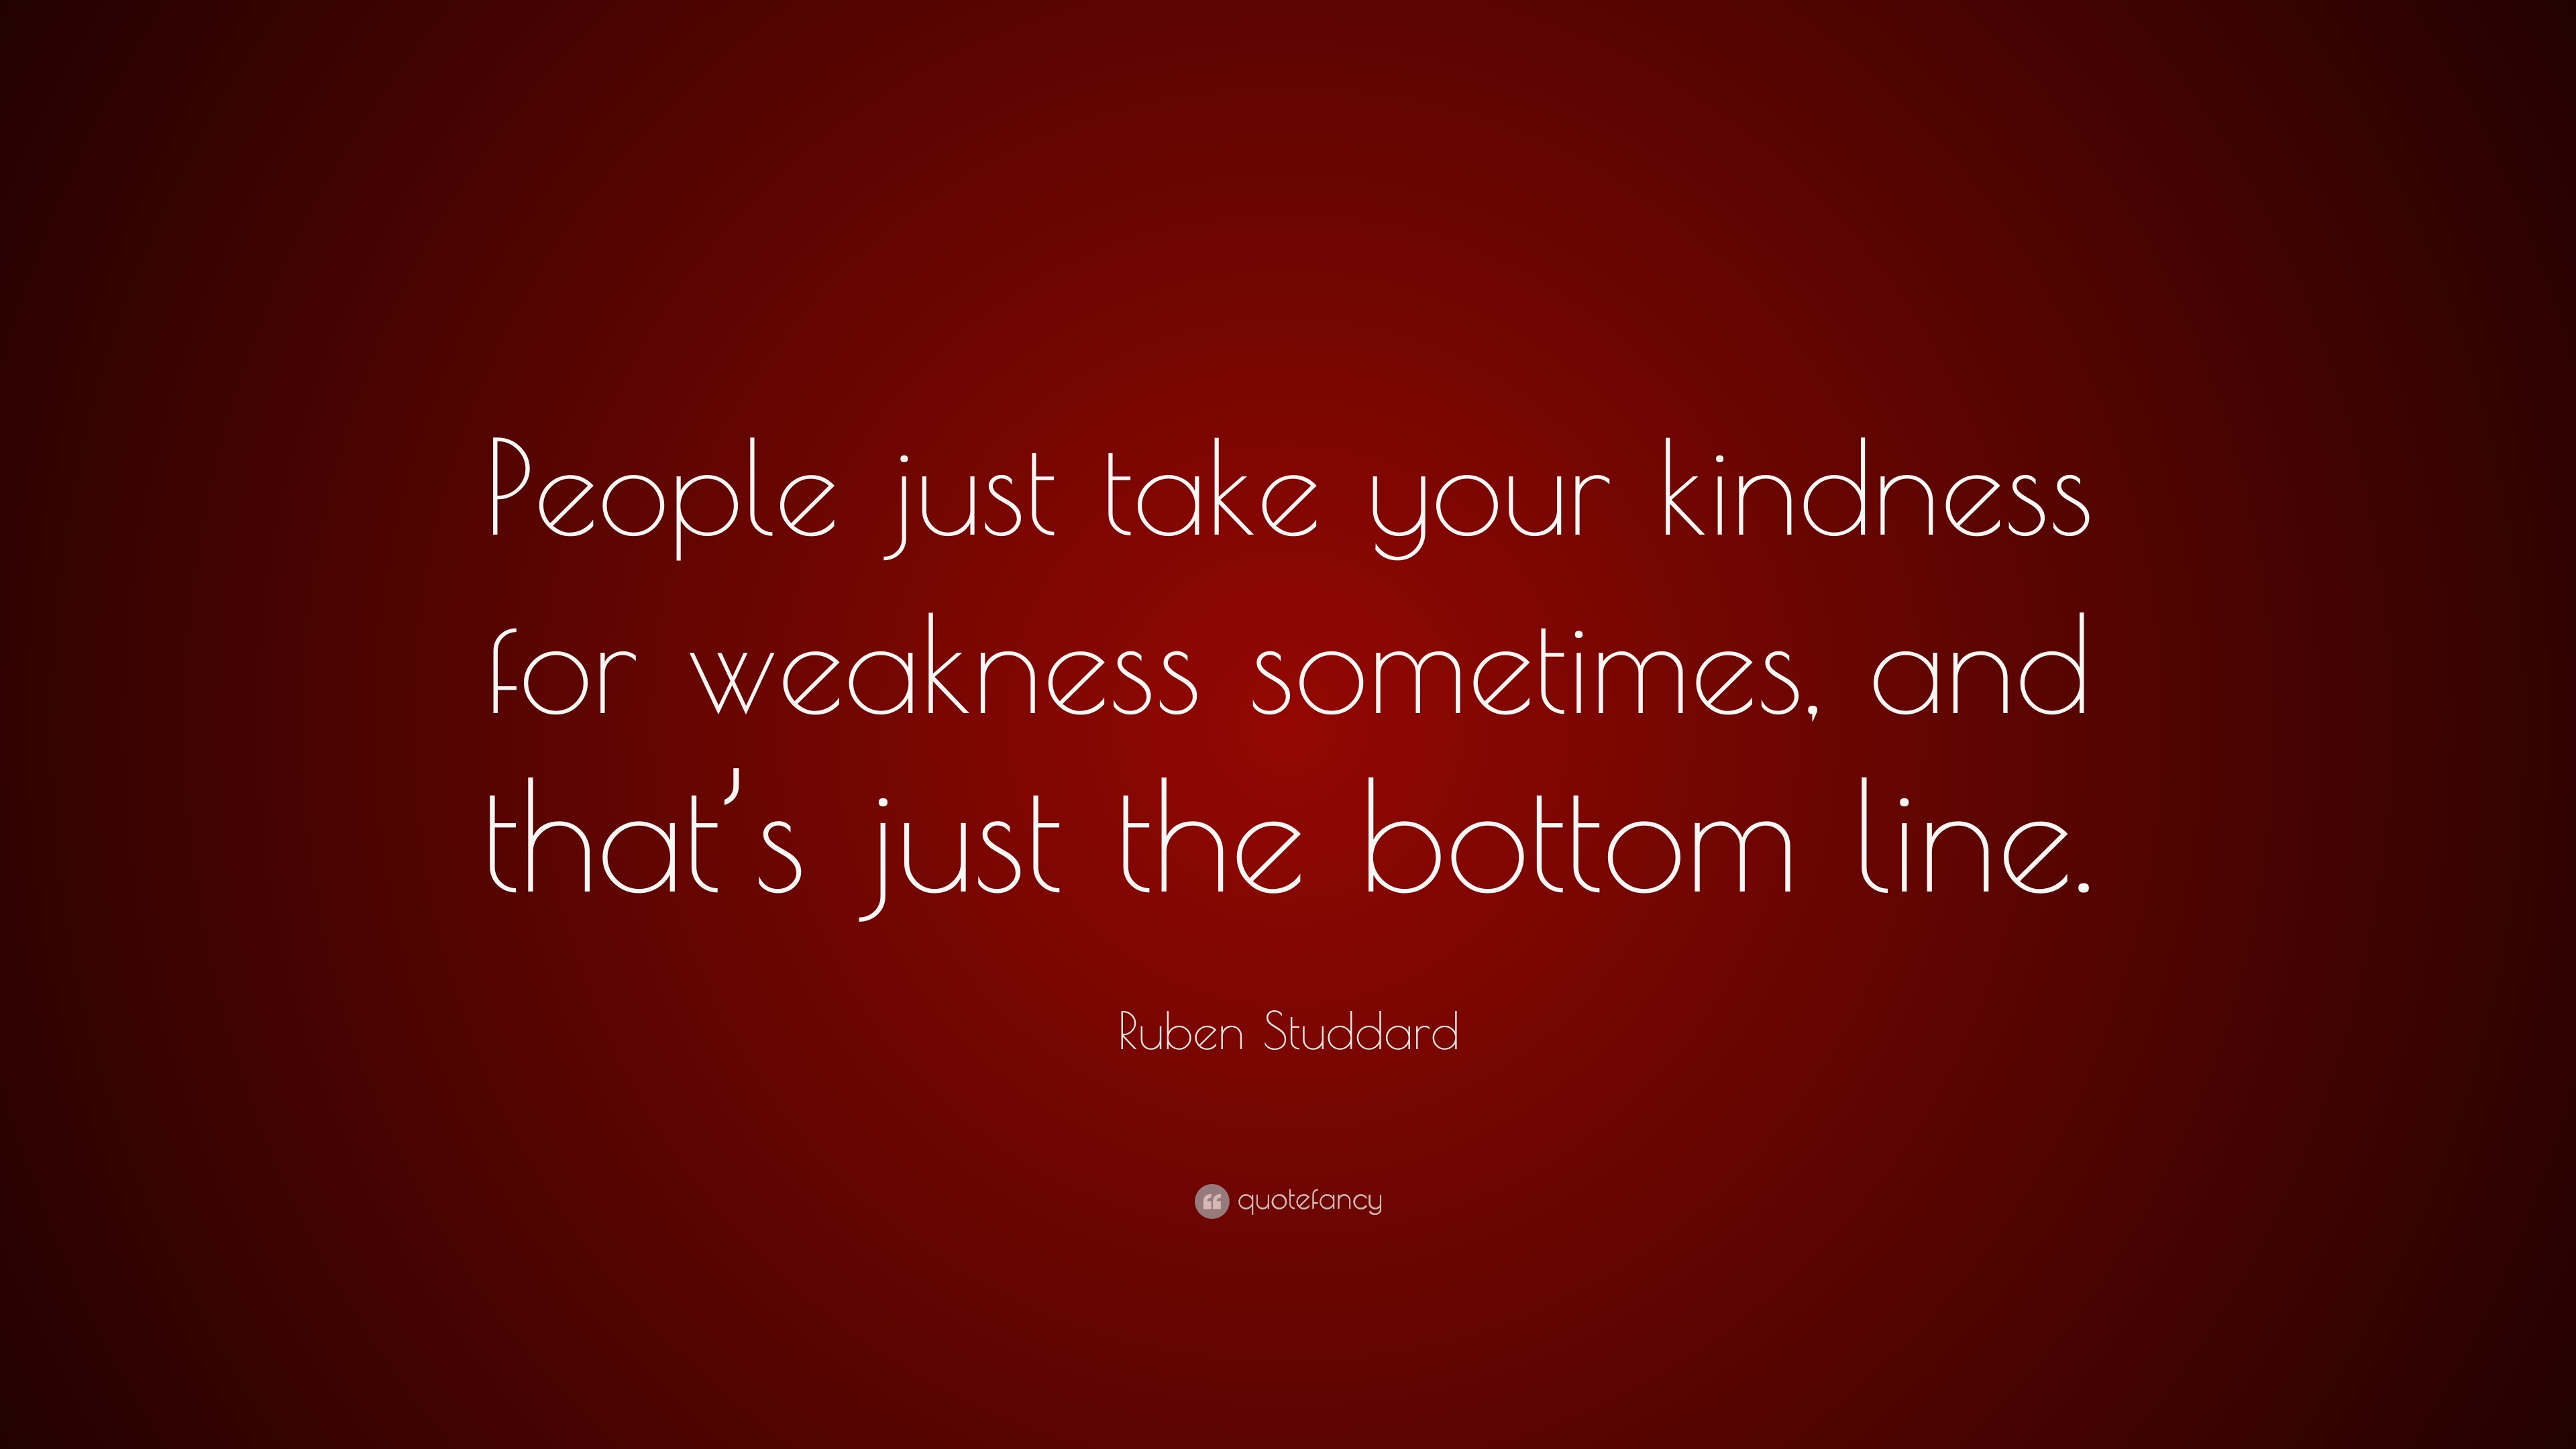 Ruben Studdard Quote People Just Take Your Kindness For Weakness